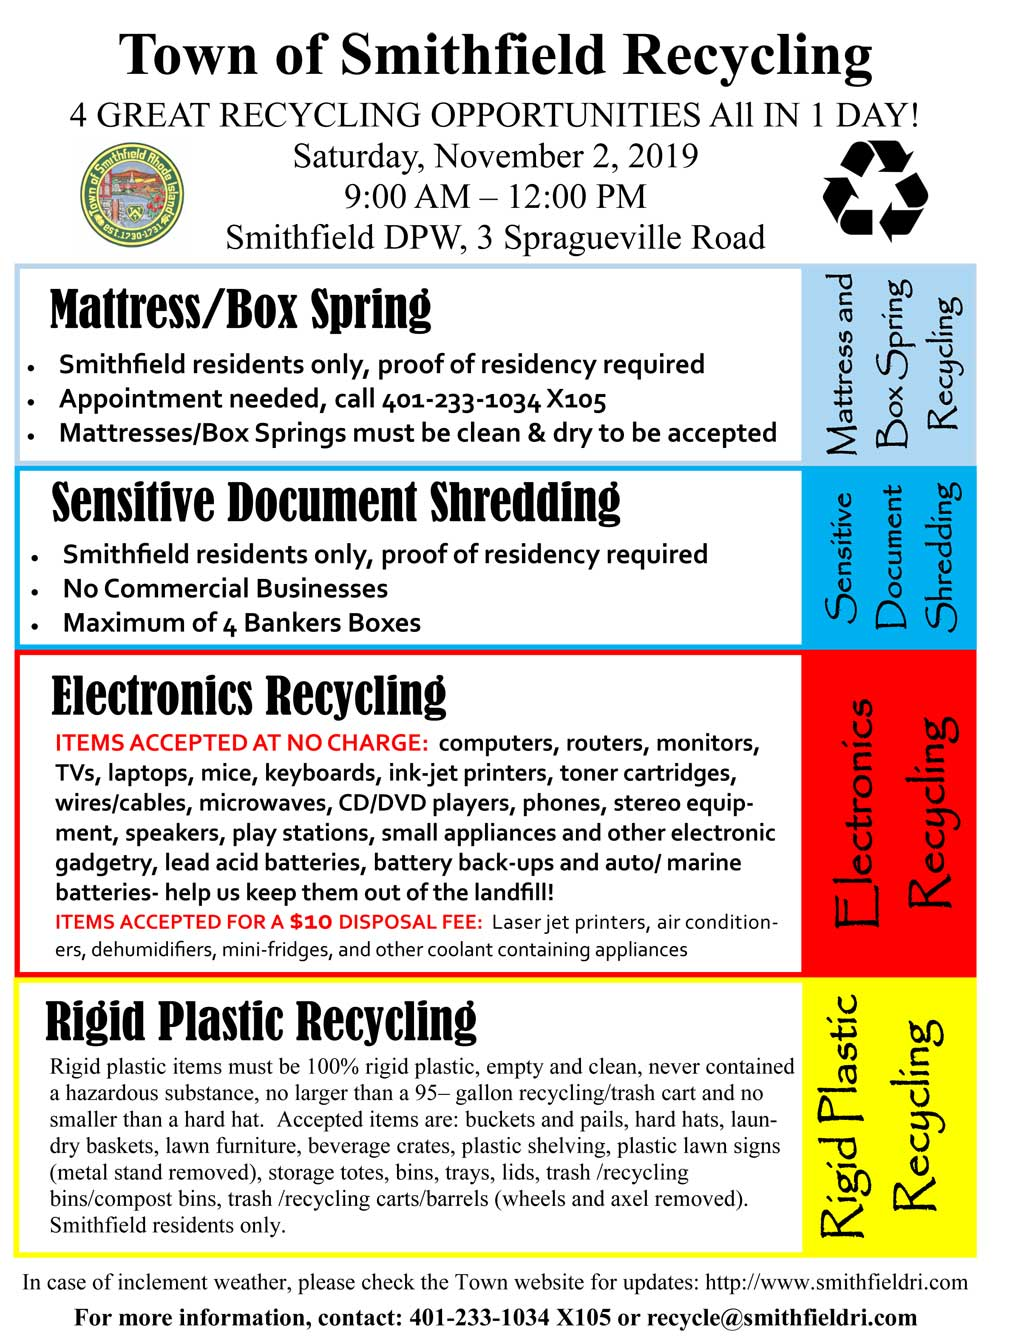 4 Great Recycling Opportunities All In 1 Day! Saturday, November 2, 2019